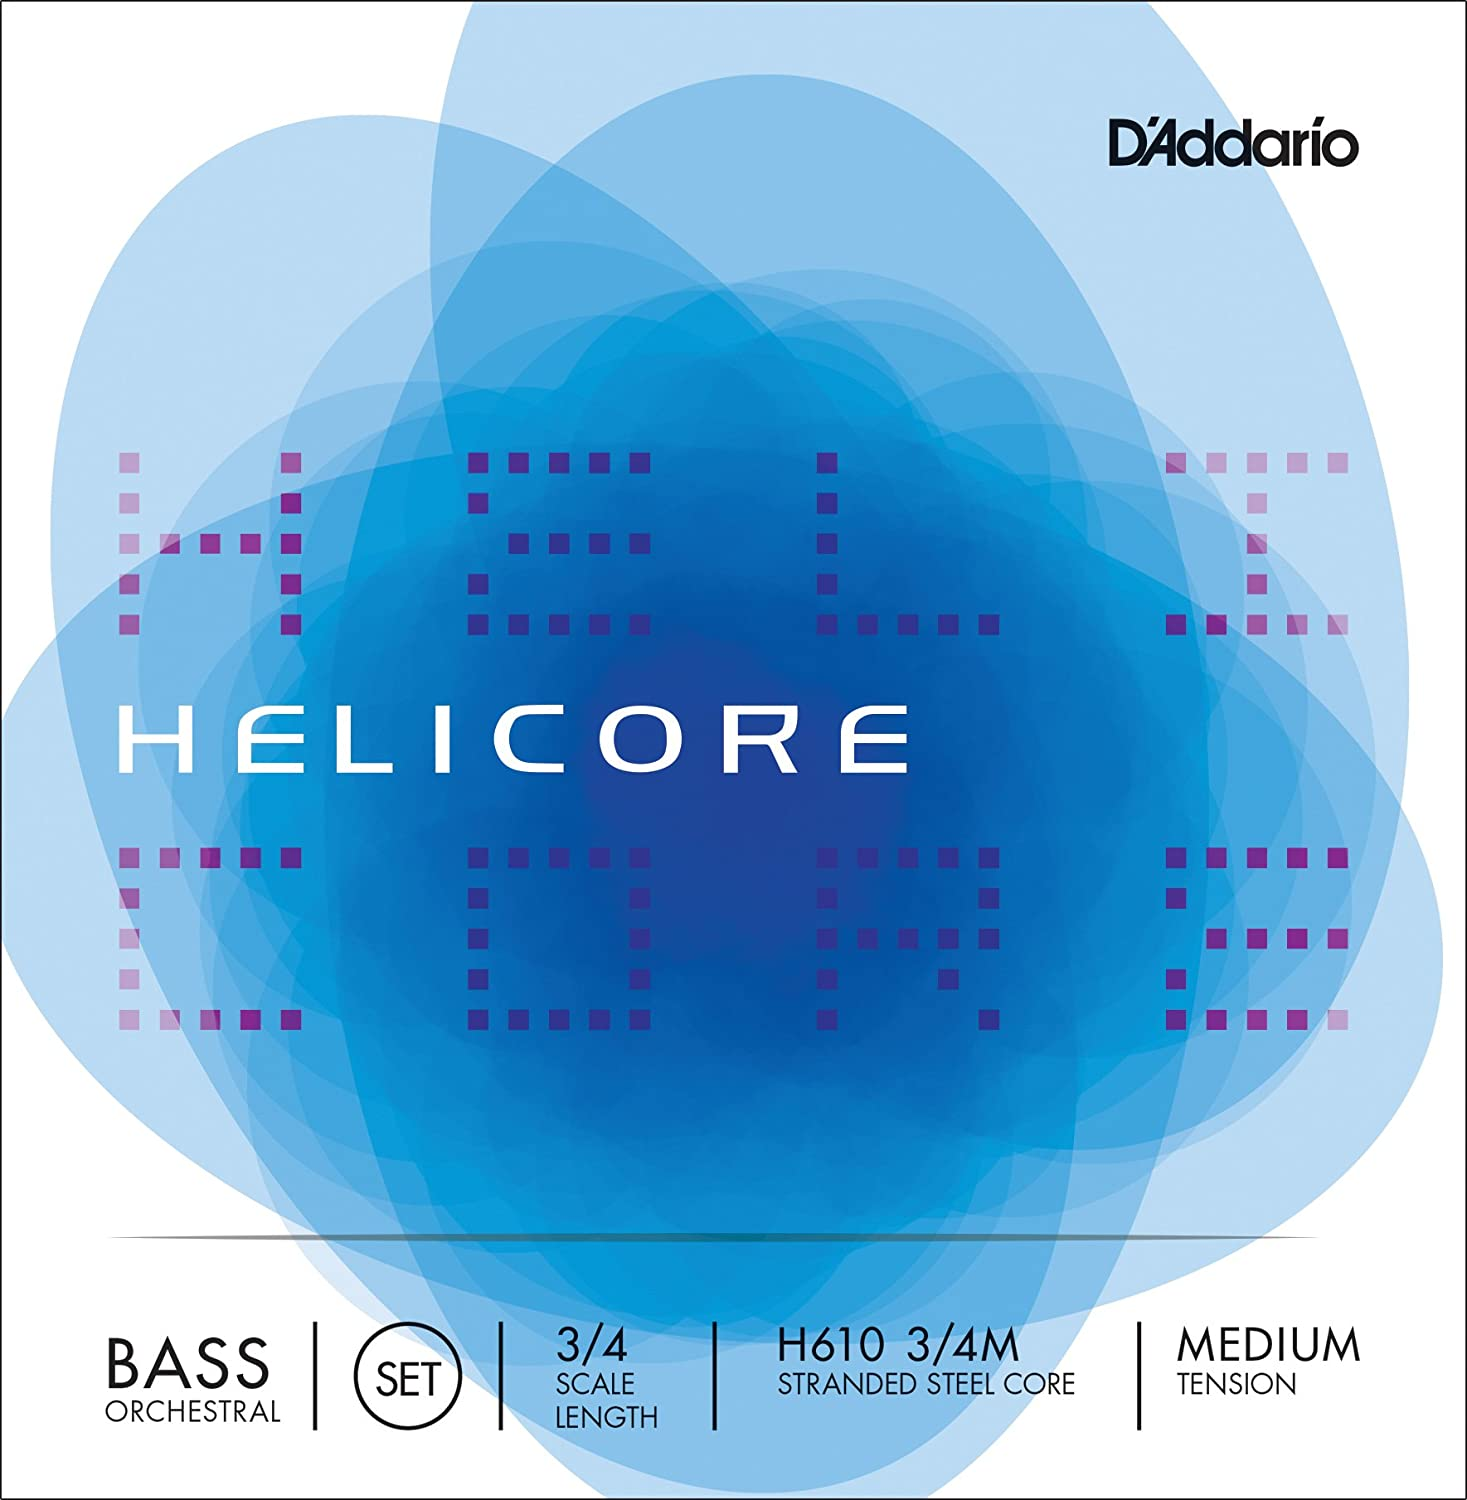 3//4 Scale Medium Tension DAddario Helicore Orchestral Bass String Set